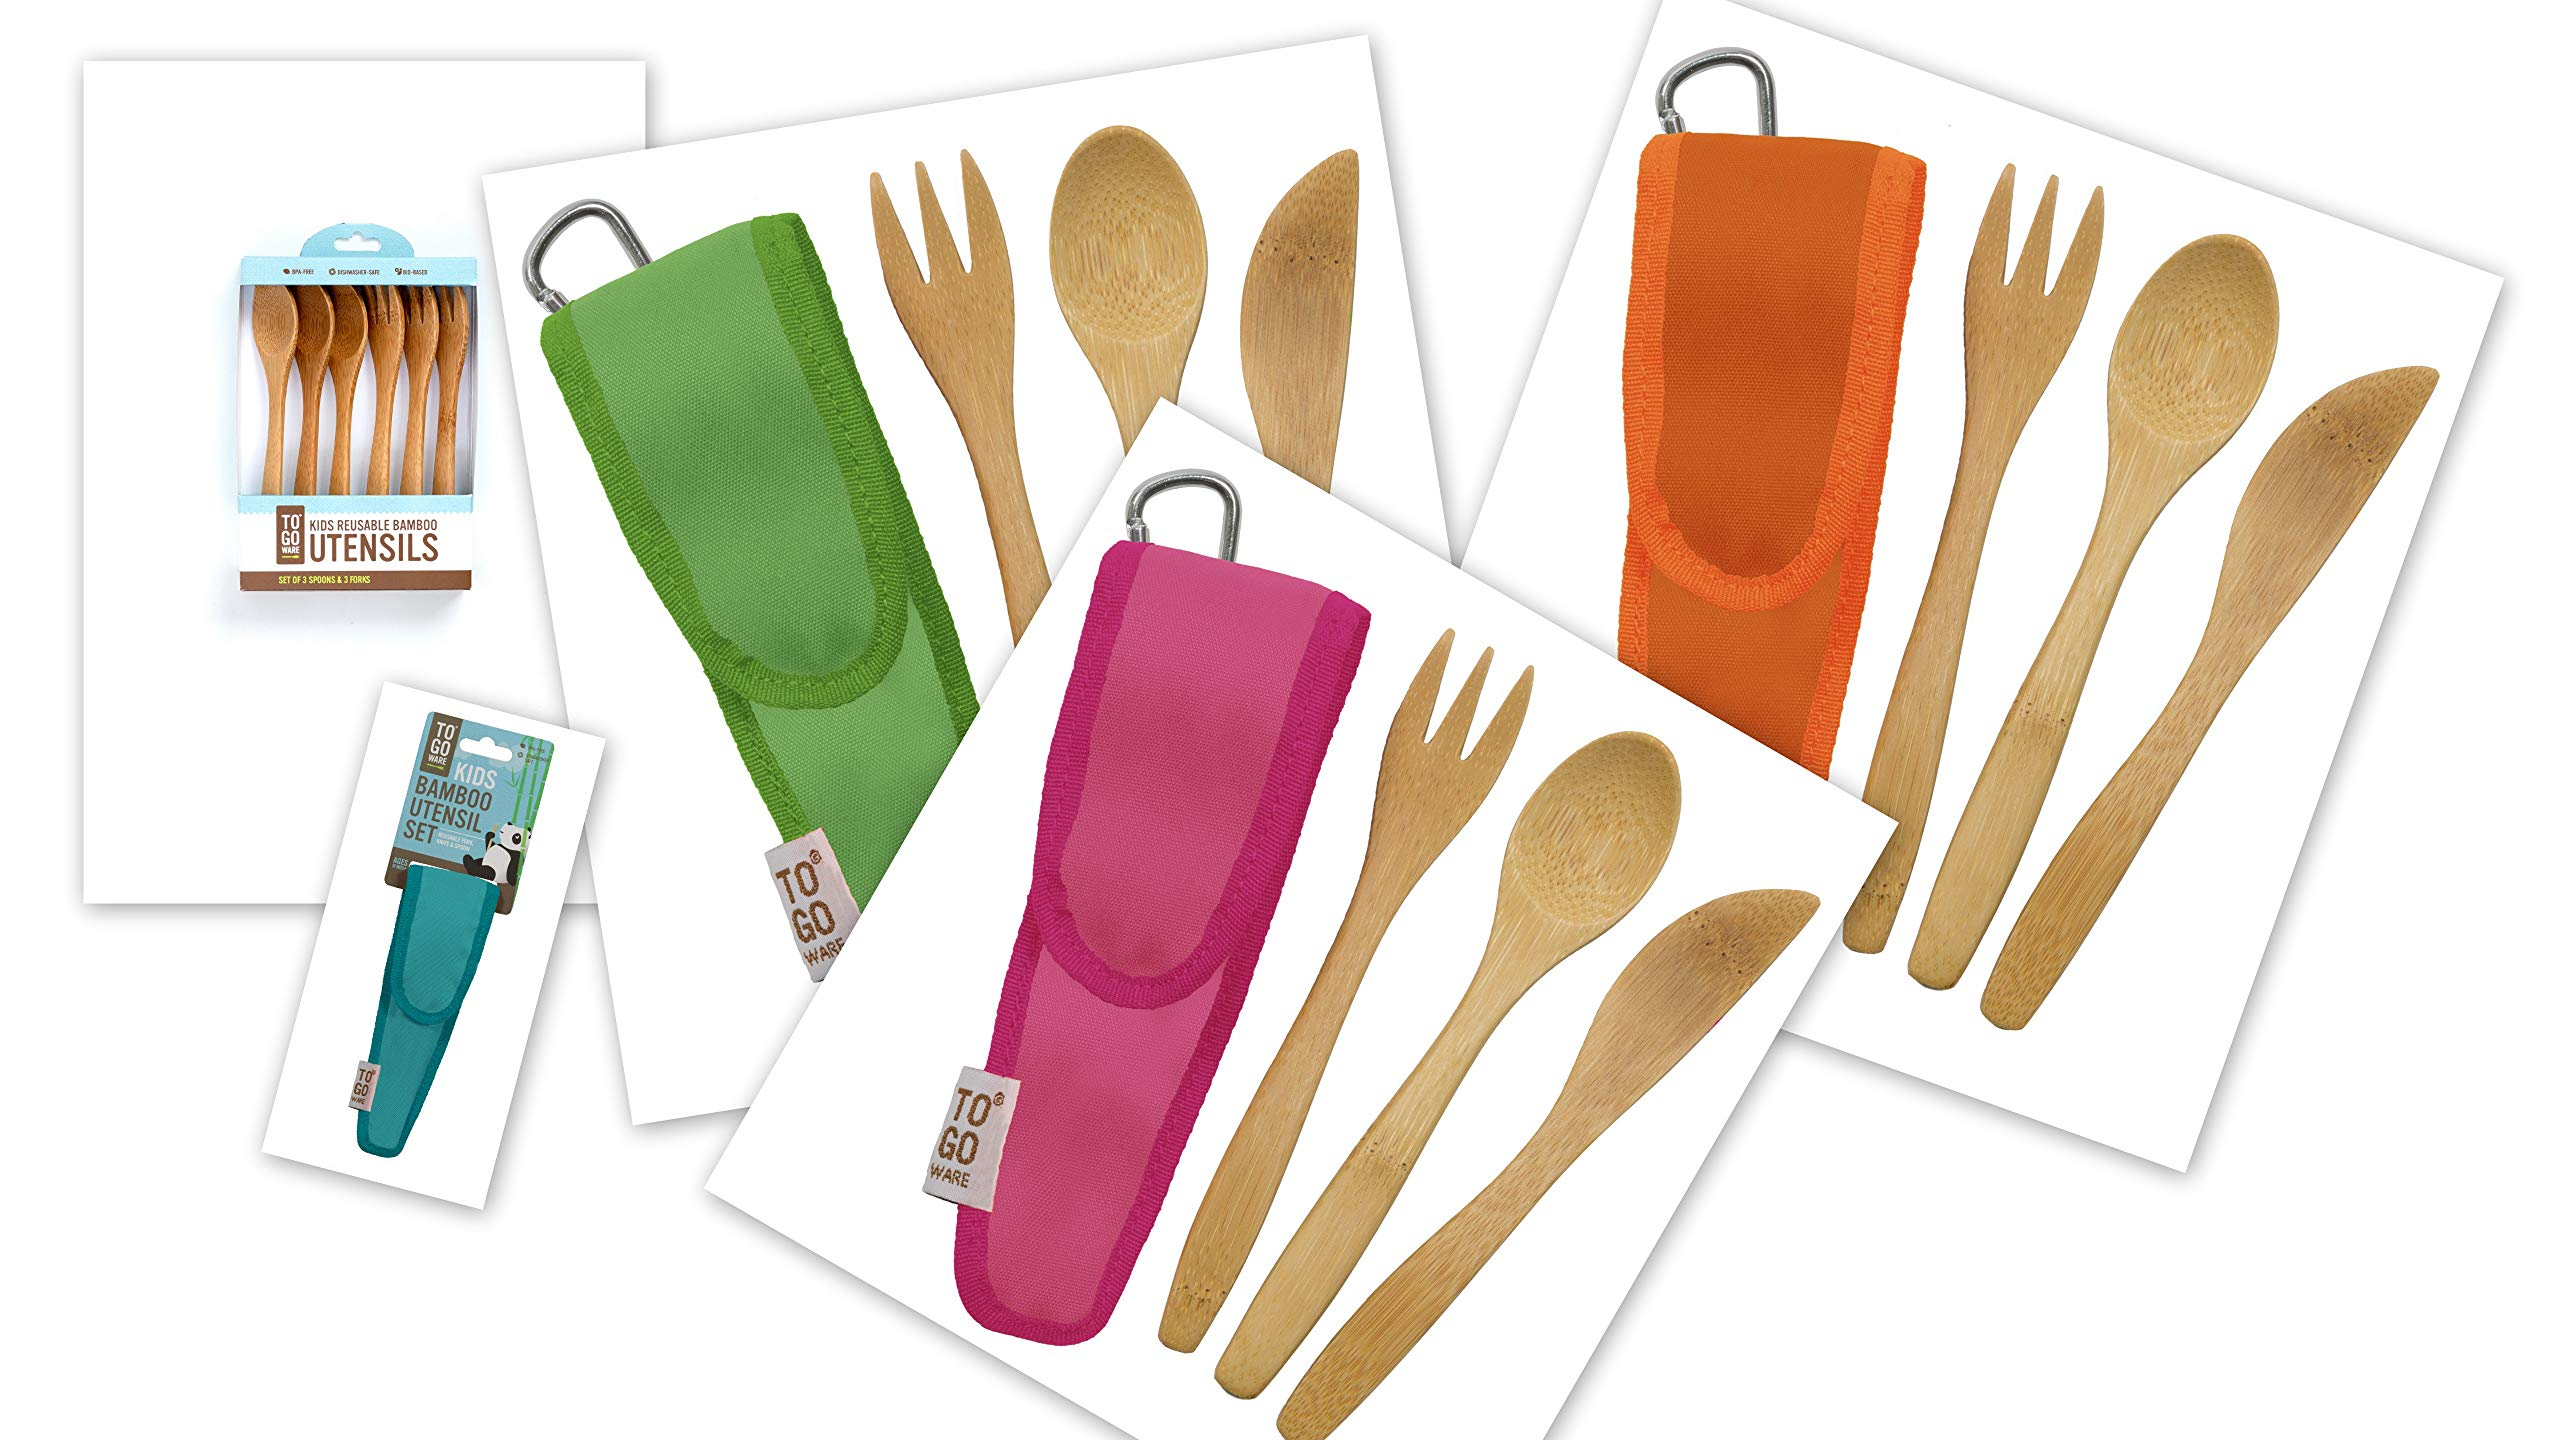 To-Go Ware Bamboo Utensils for Kids Fork Spoon Knife Set in Holder with Carabiner Multi-Pack of 4 in Different Colors